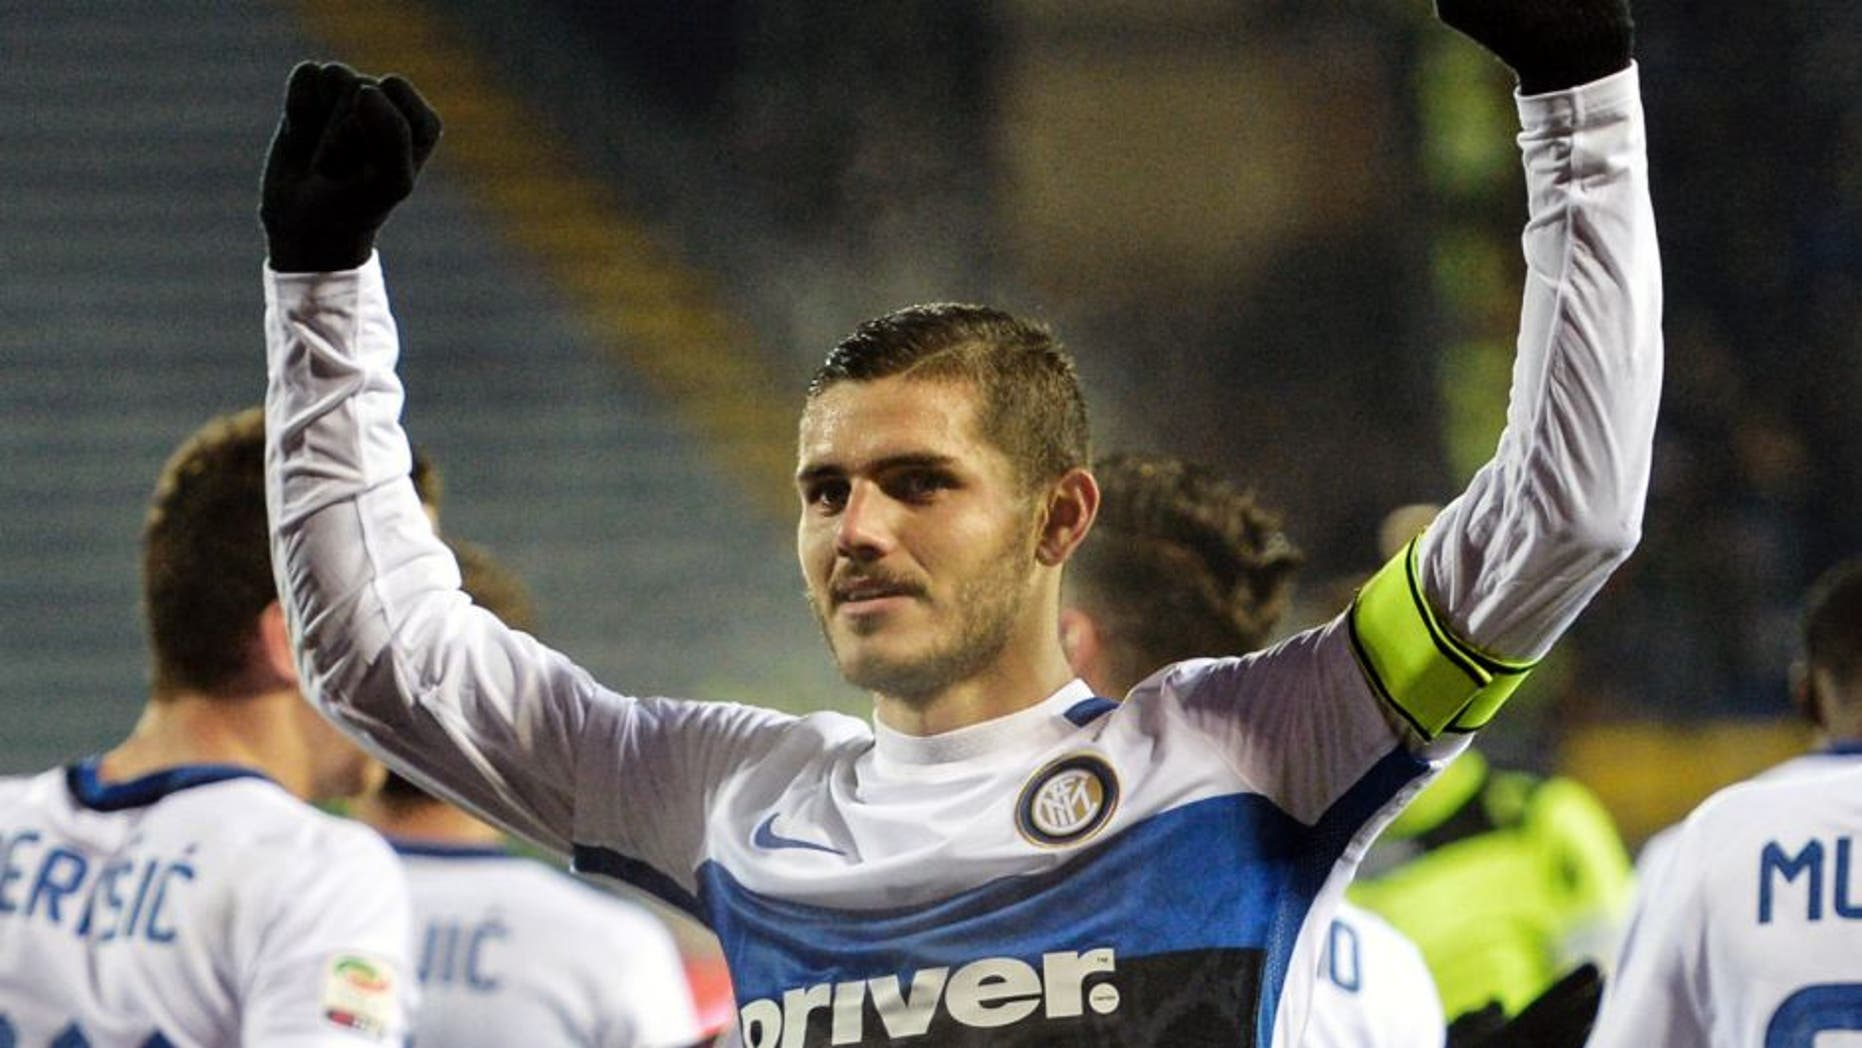 "Inter Milan's forward from Argentina Mauro Icardi celebrates after scoring during the Italian Serie A football match Empoli vs Inter Milan, on January 6, 2016 at Empoli's ""Carlo Castellani"" comunal stadium. AFP PHOTO / ANDREAS SOLARO / AFP / ANDREAS SOLARO (Photo credit should read ANDREAS SOLARO/AFP/Getty Images)"